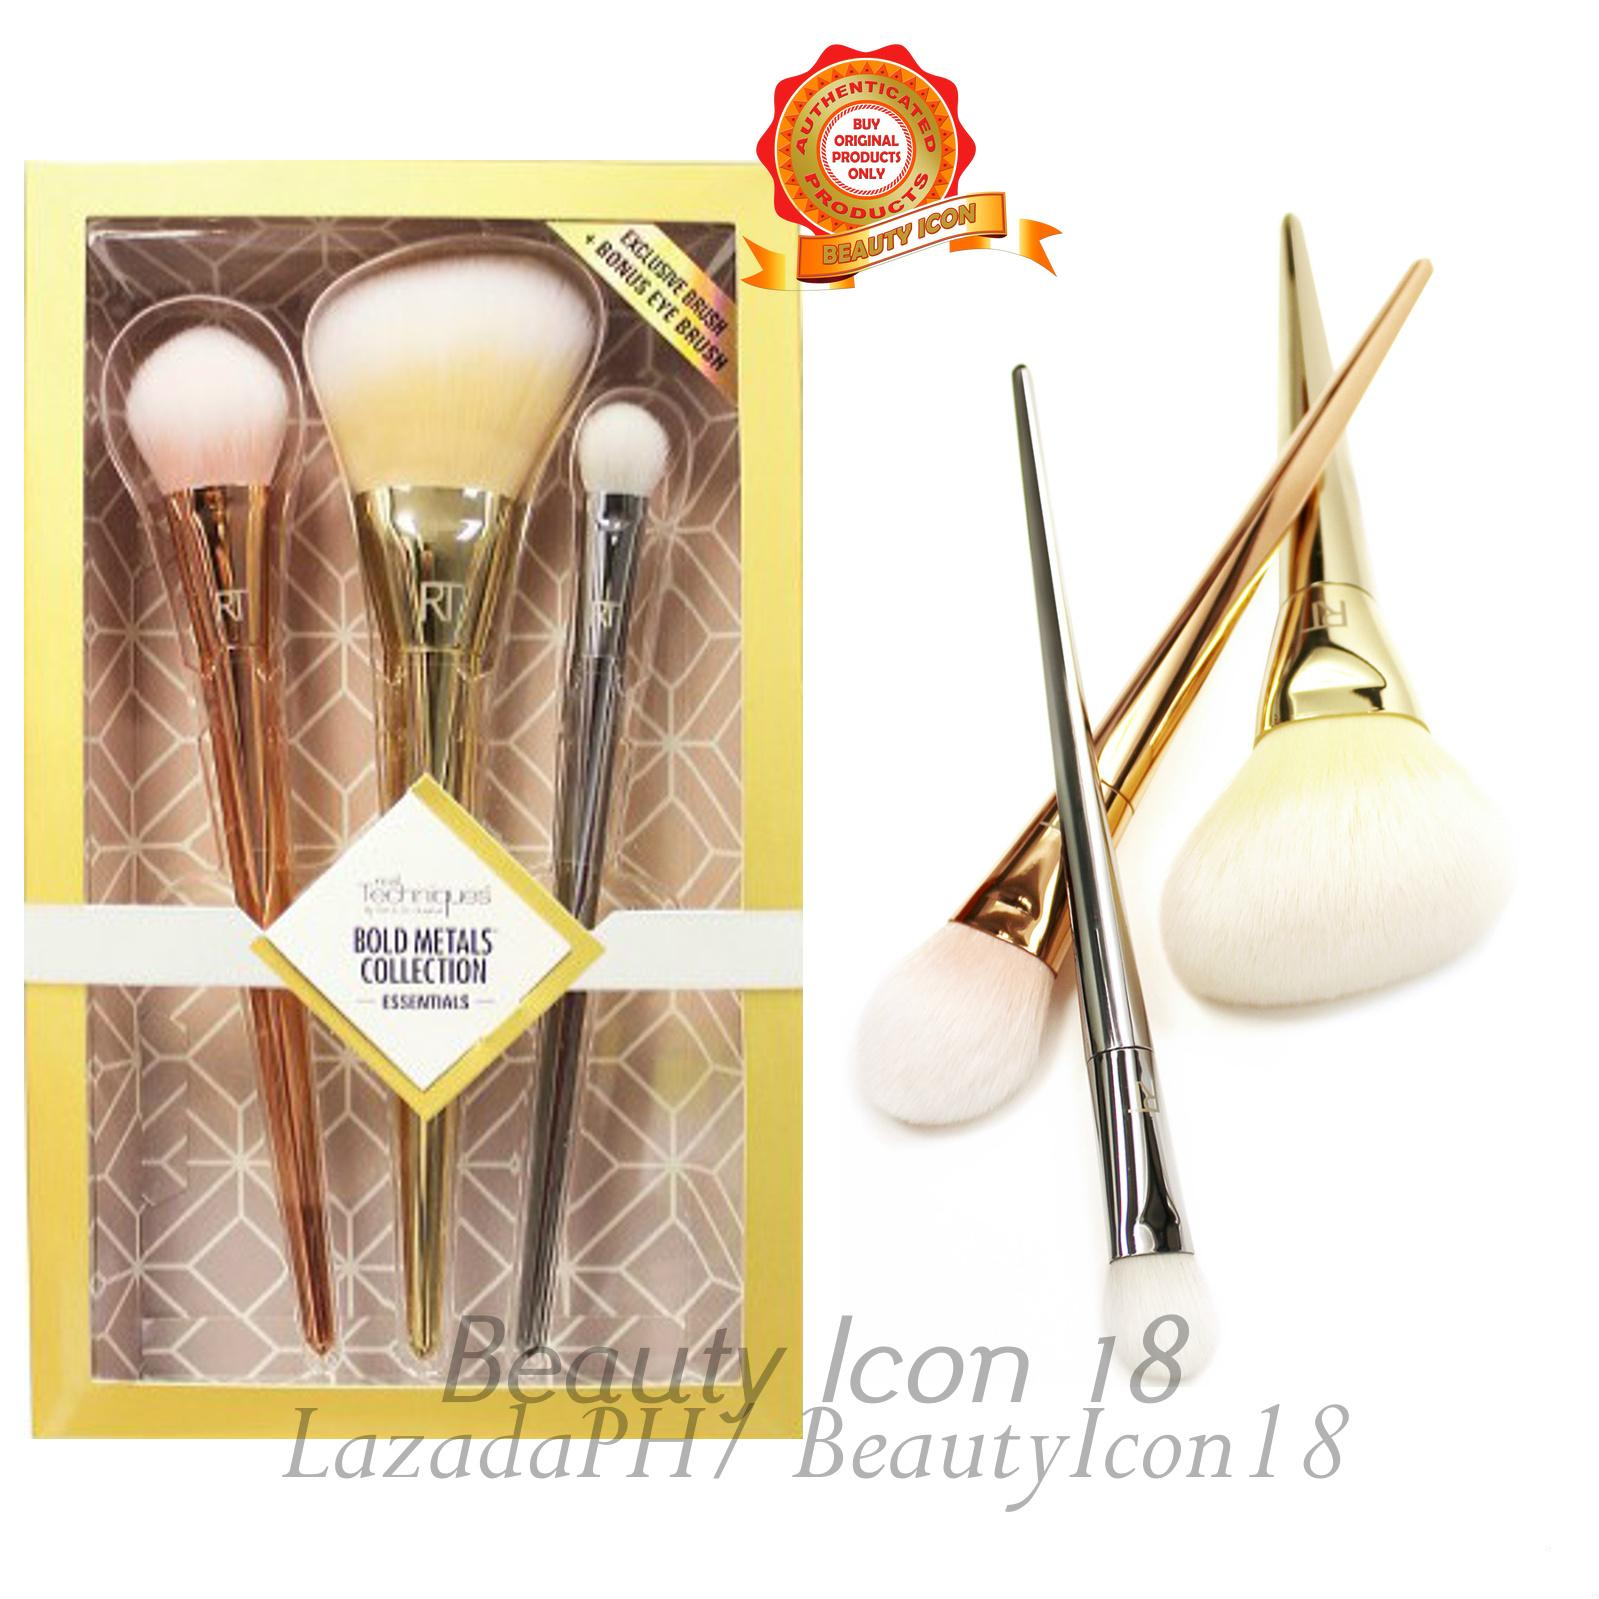 Real Techniques Bold Metals Collection Exclusive Brush + Bonus Eye Brush Philippines